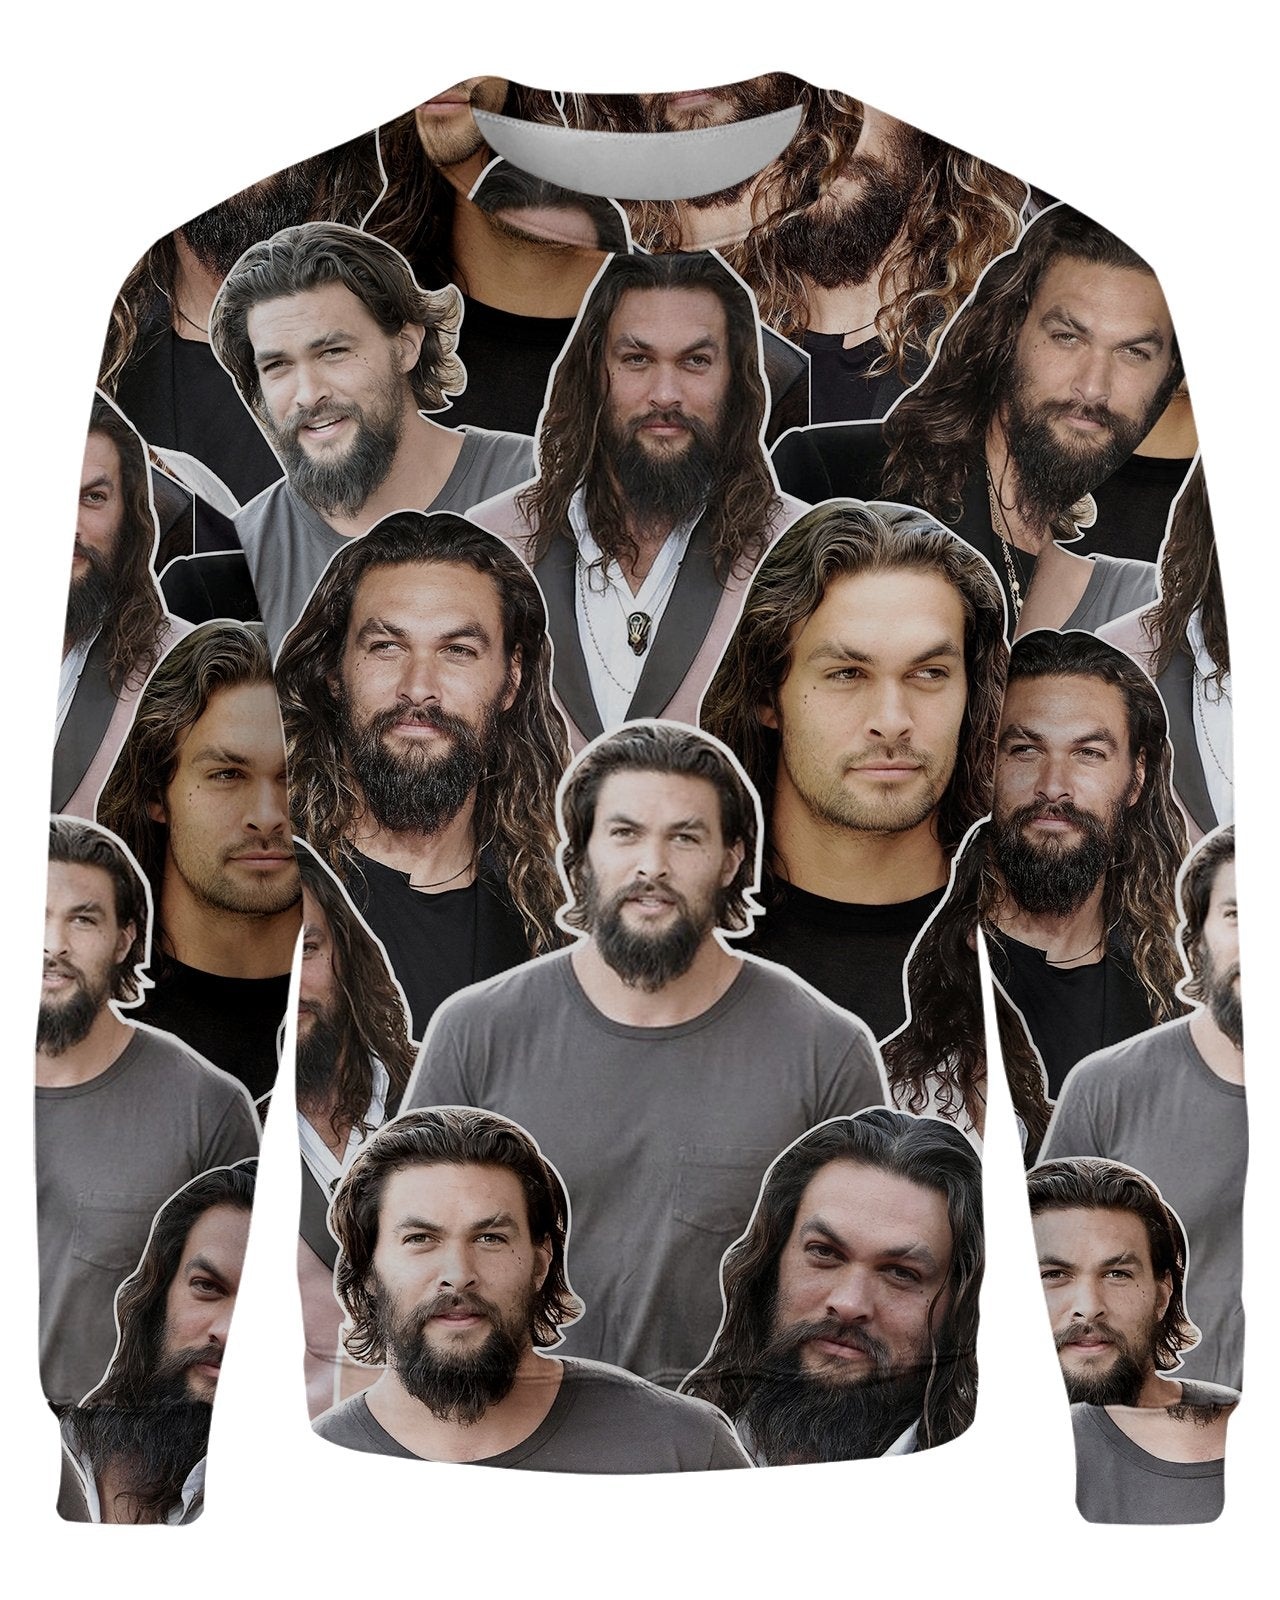 Jason Momoa printed all over in HD on premium fabric. Handmade in California.